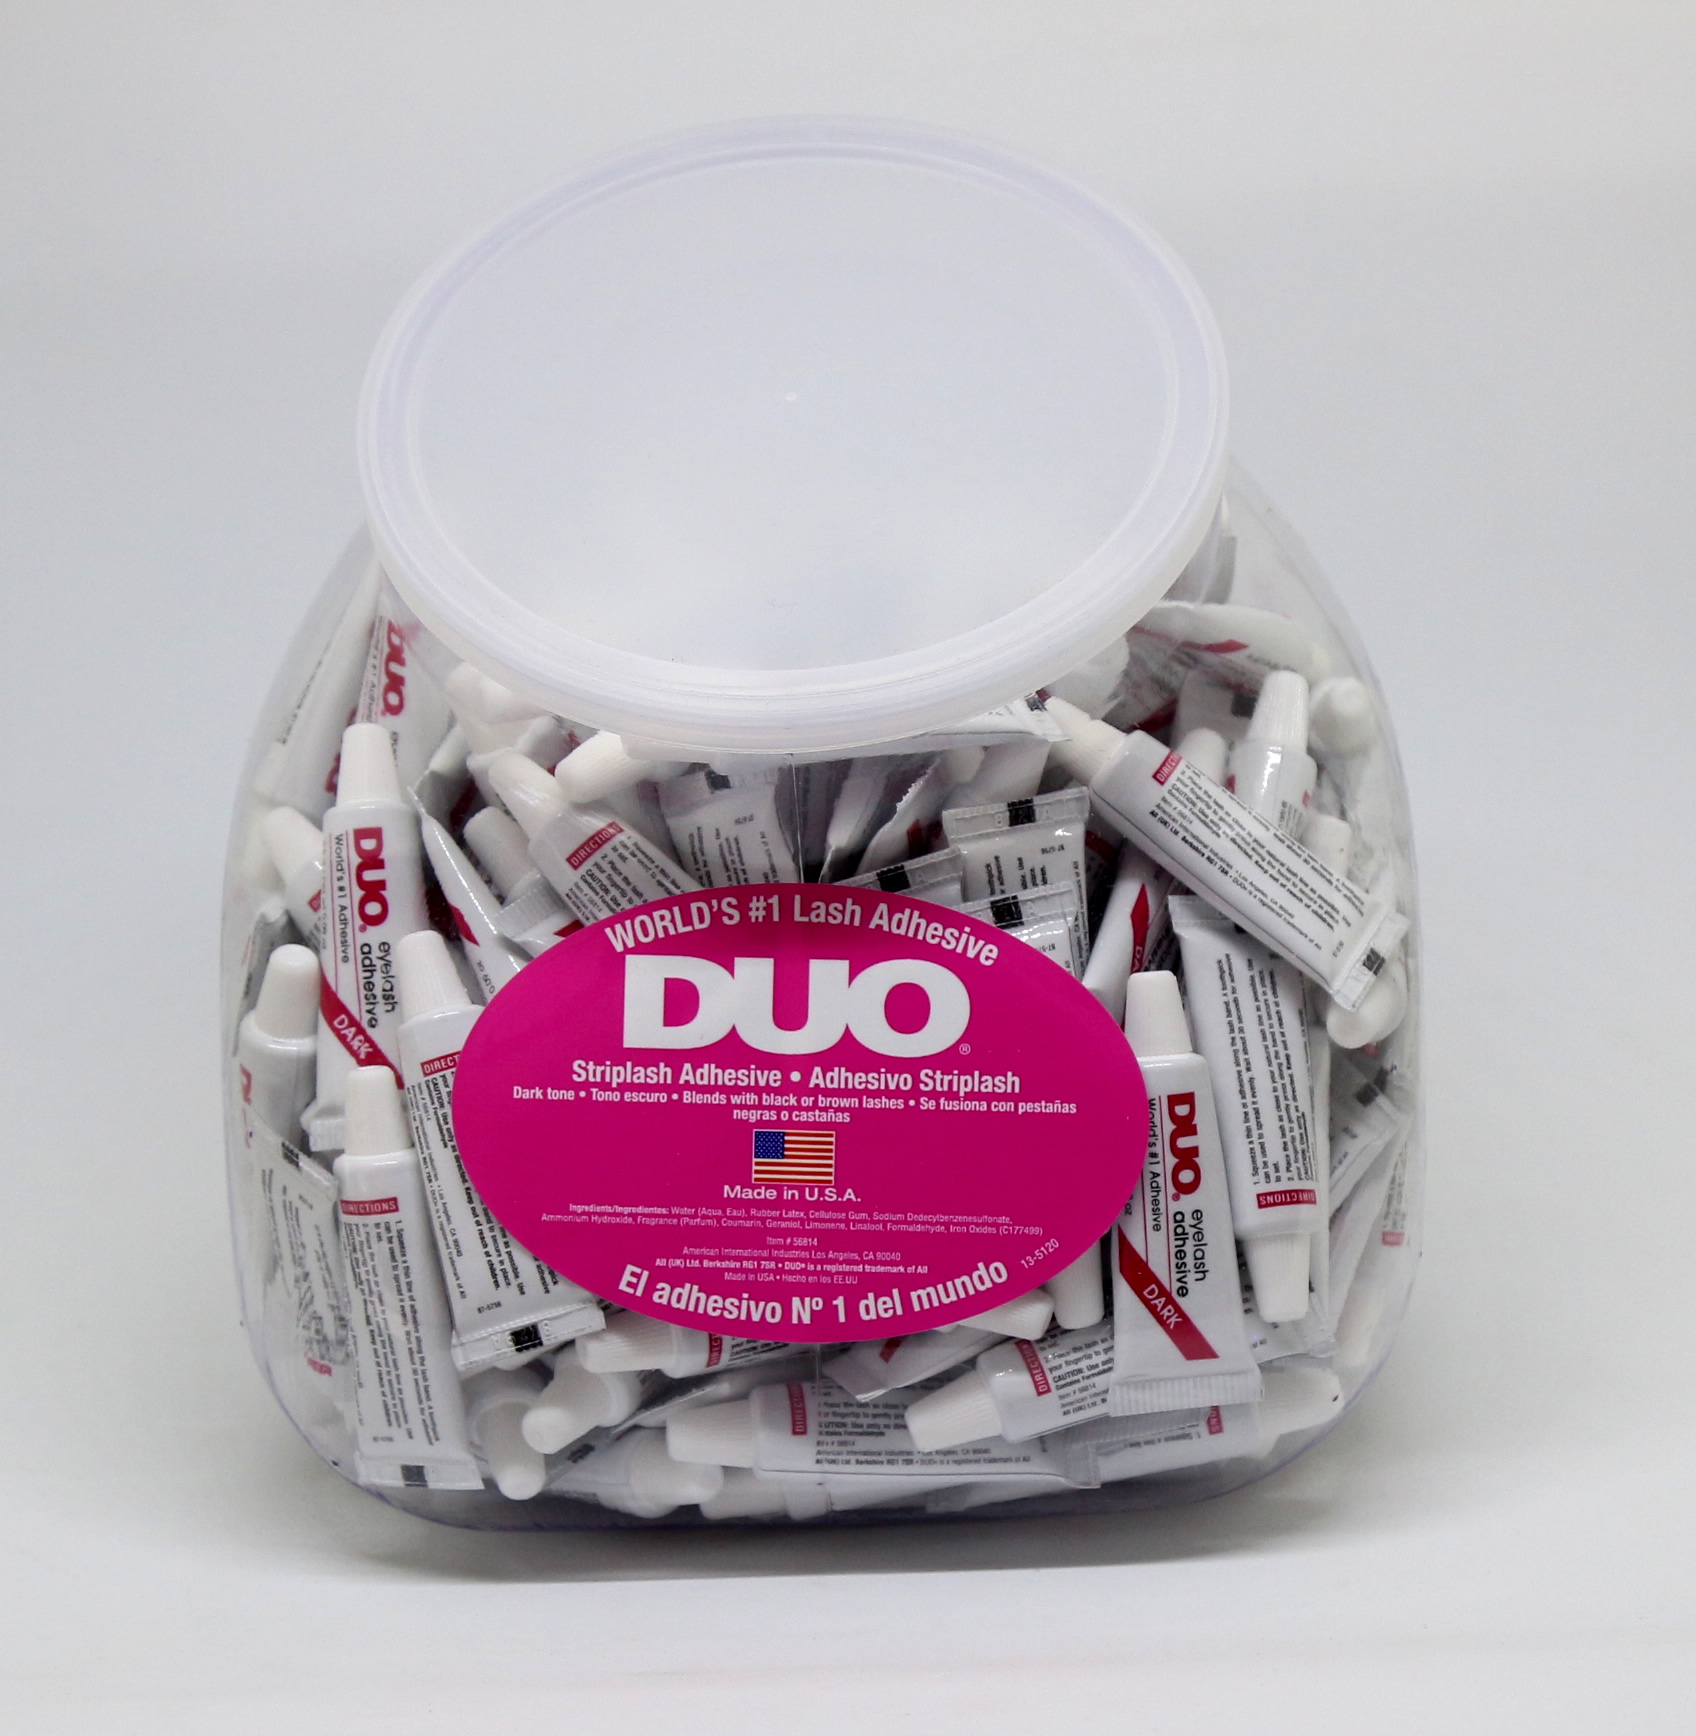 DUO Eyelash Adhesive 0.9oz Dark Fish Bowl